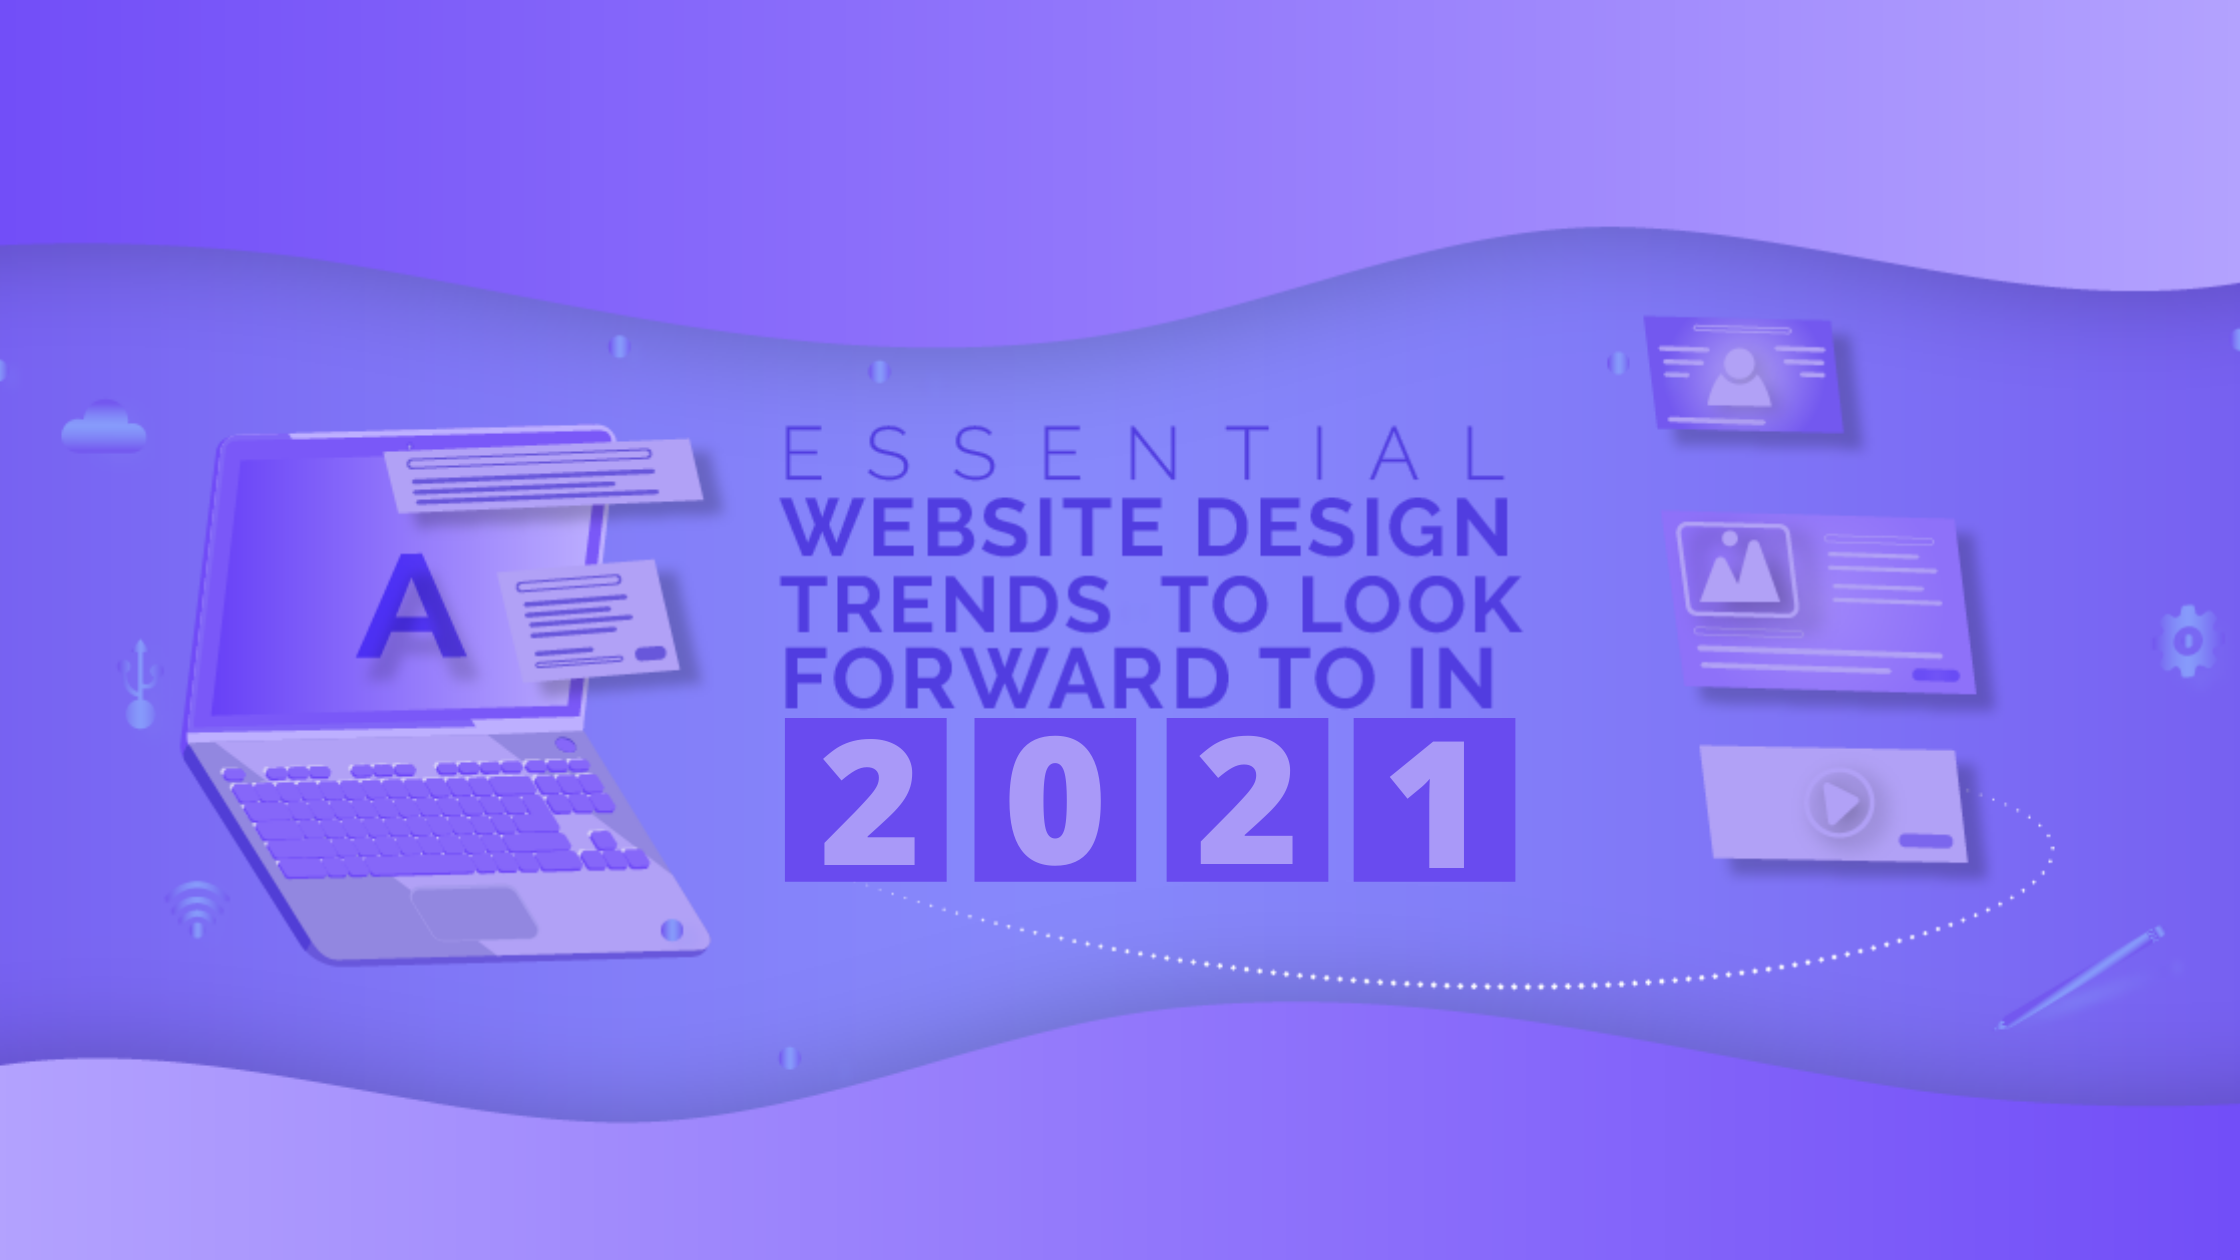 Essential Website Design Trends to Look Forward to in 2021